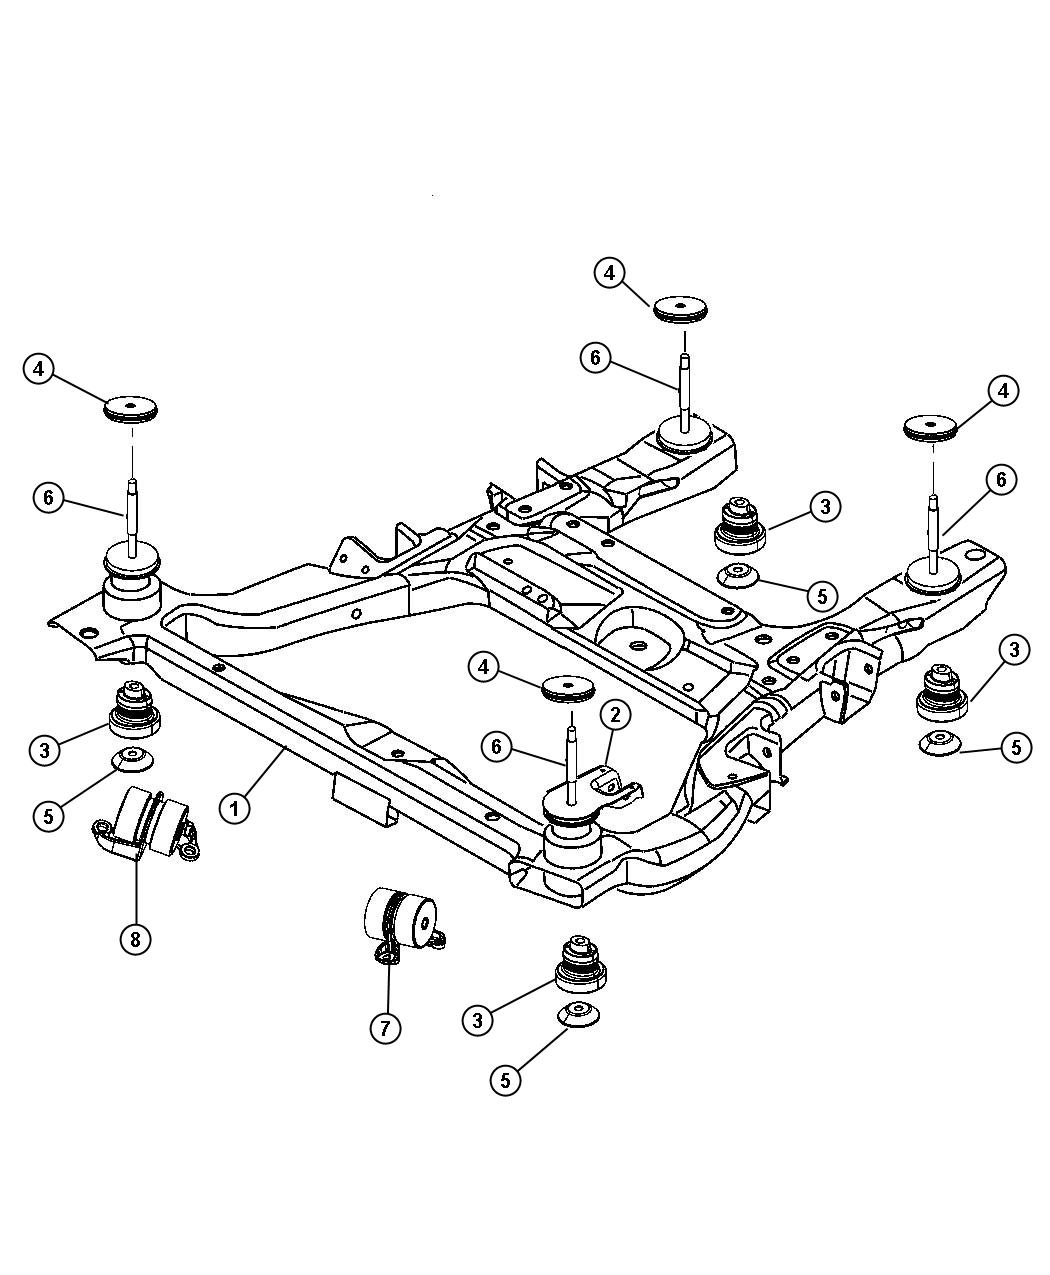 Wiring Database 25 Chrysler Pacifica Parts Diagram